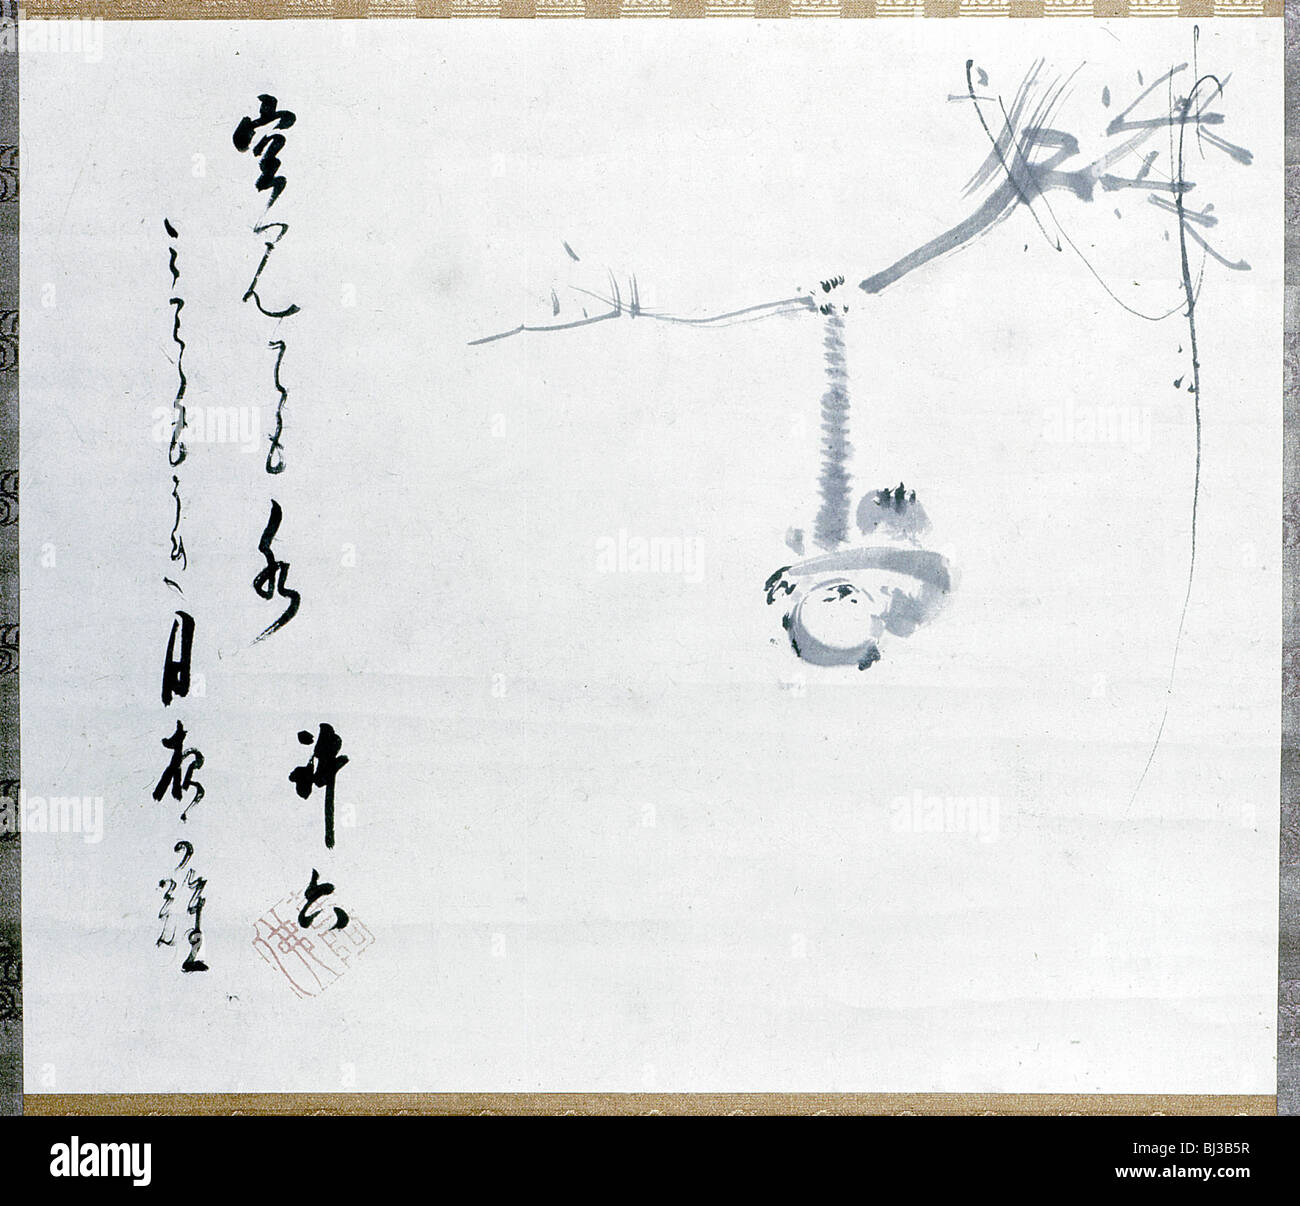 Calligraphy by Matsuo Basho, with a painting by one of his pupils, Japanese, 17th century. Artist: Werner Forman Stock Photo